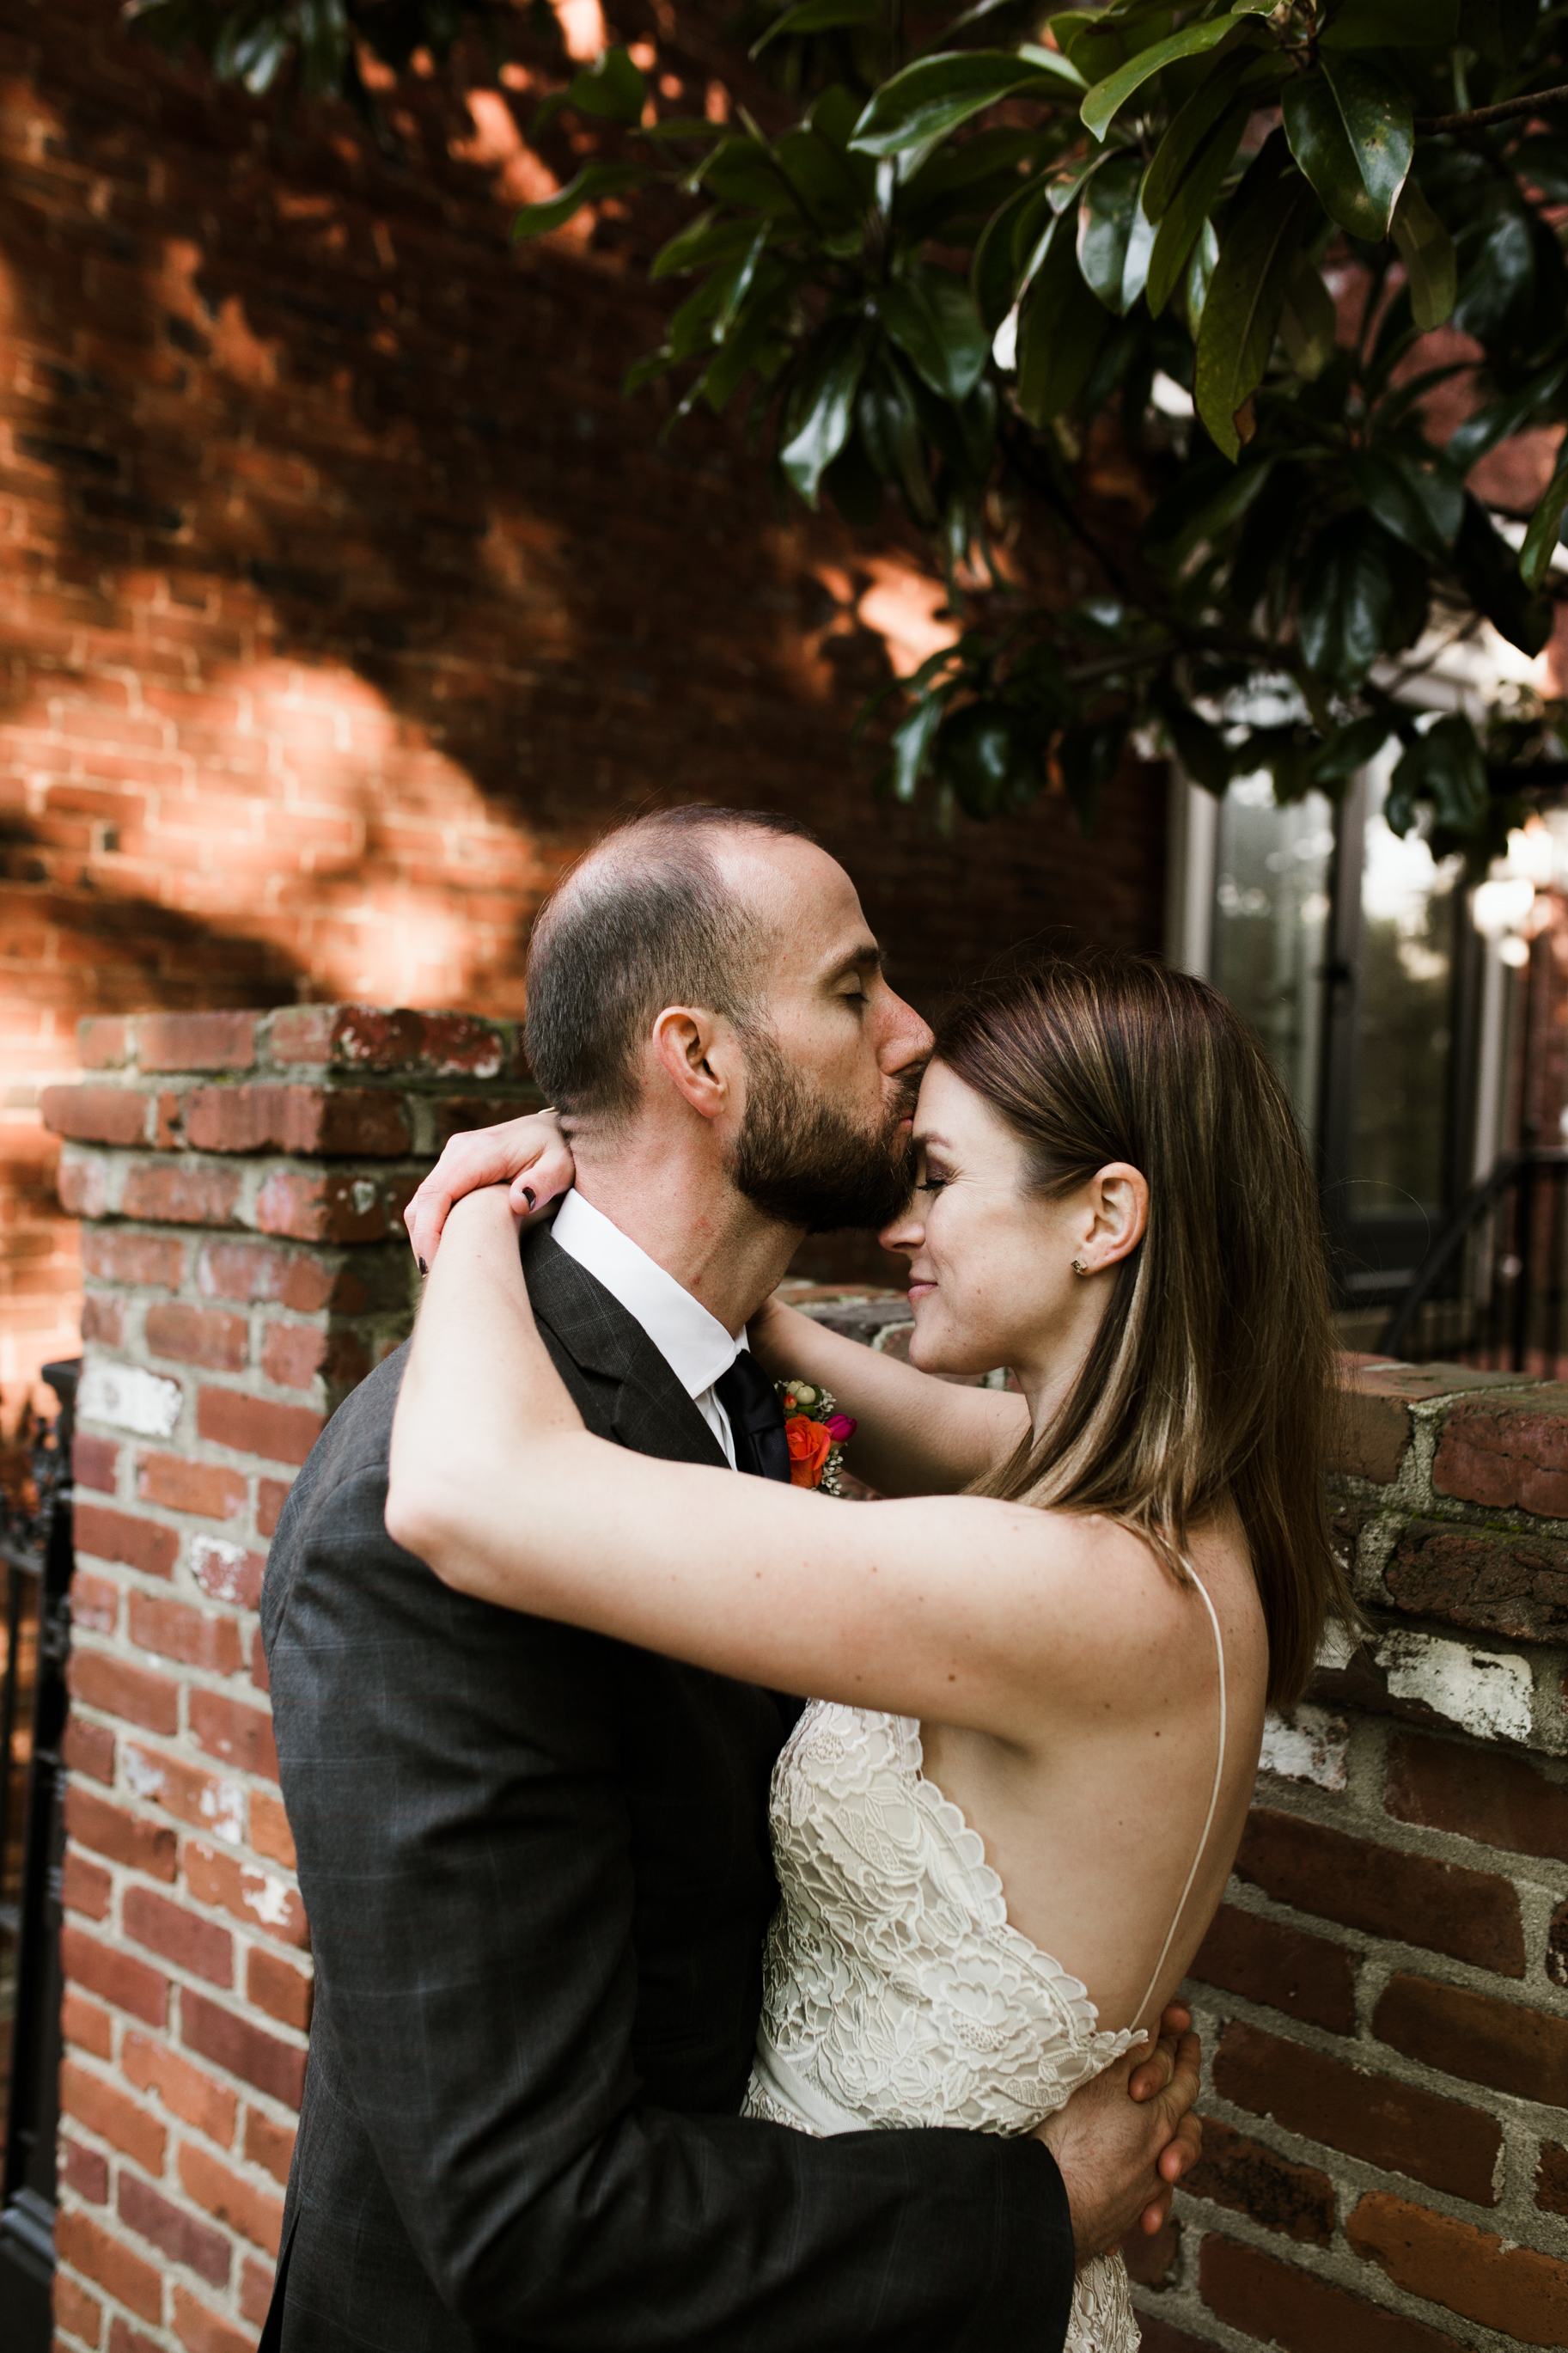 Louisville Courthouse Wedding Louisville Wedding Photographer 2018 Crystal Ludwick Photo Louisville Wedding Photographer Kentucky Wedding Photographer (67 of 76).jpg